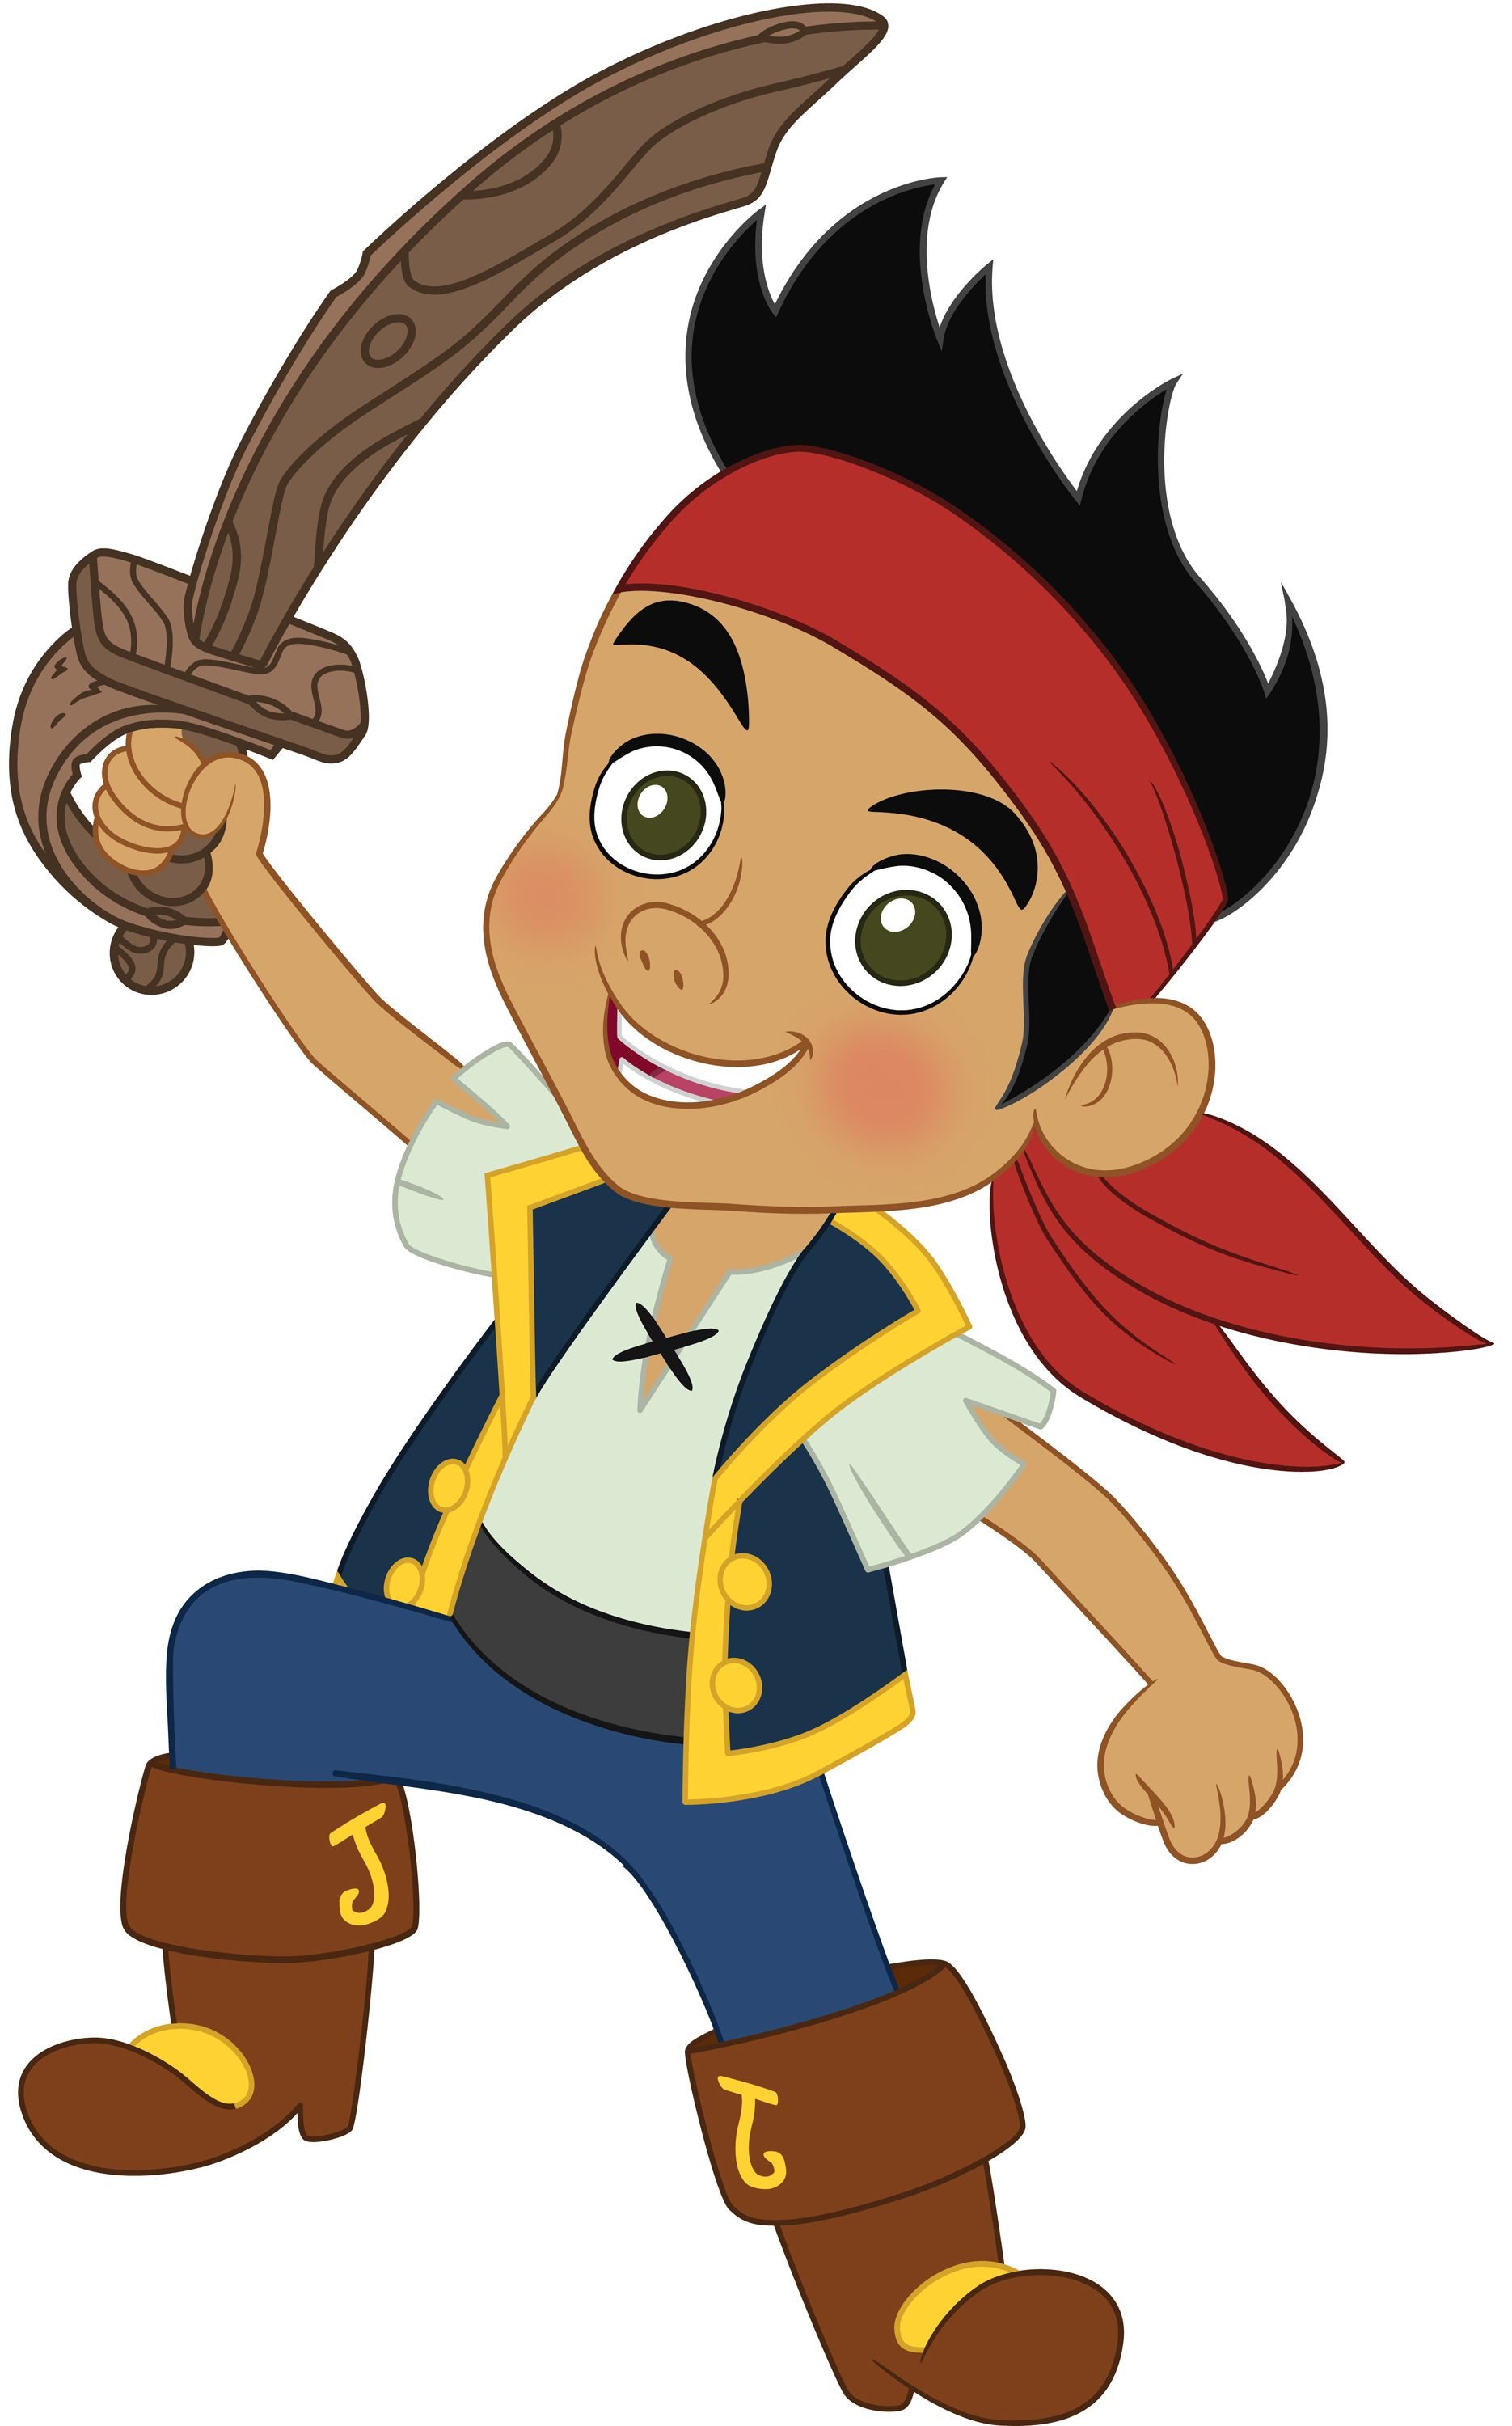 jake and the never land pirates clipart 1 jpg 1870 3000 party rh pinterest com pirate clipart gratuit pirate clipart black and white